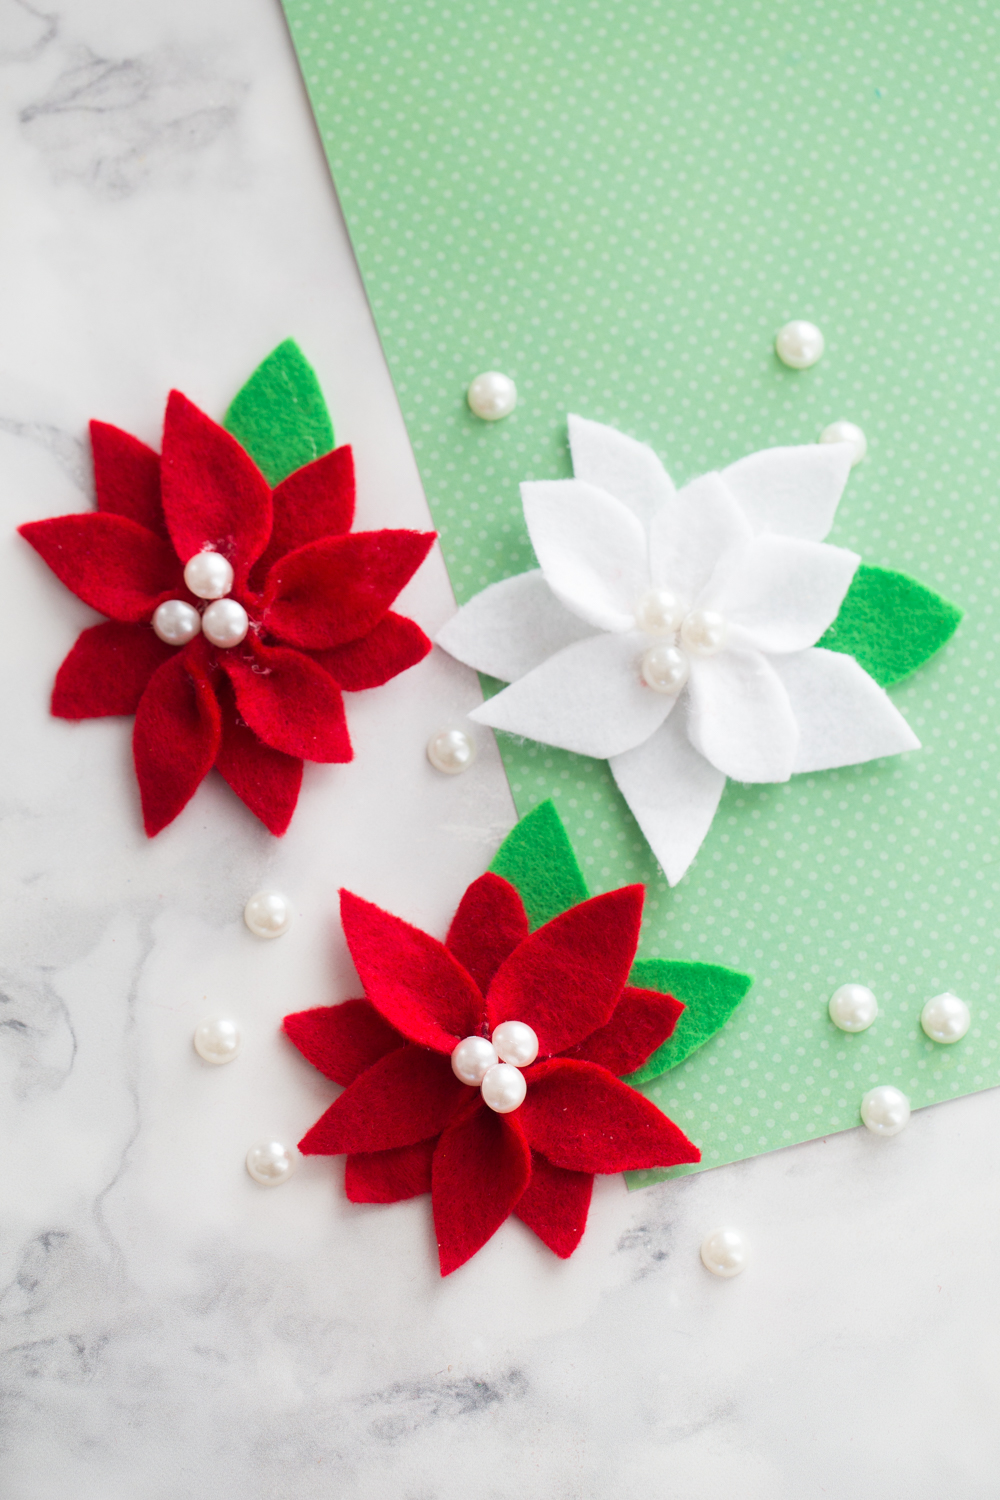 Felt Poinsettia | Stunning Homemade Christmas Ornaments You Can DIY On A Budget